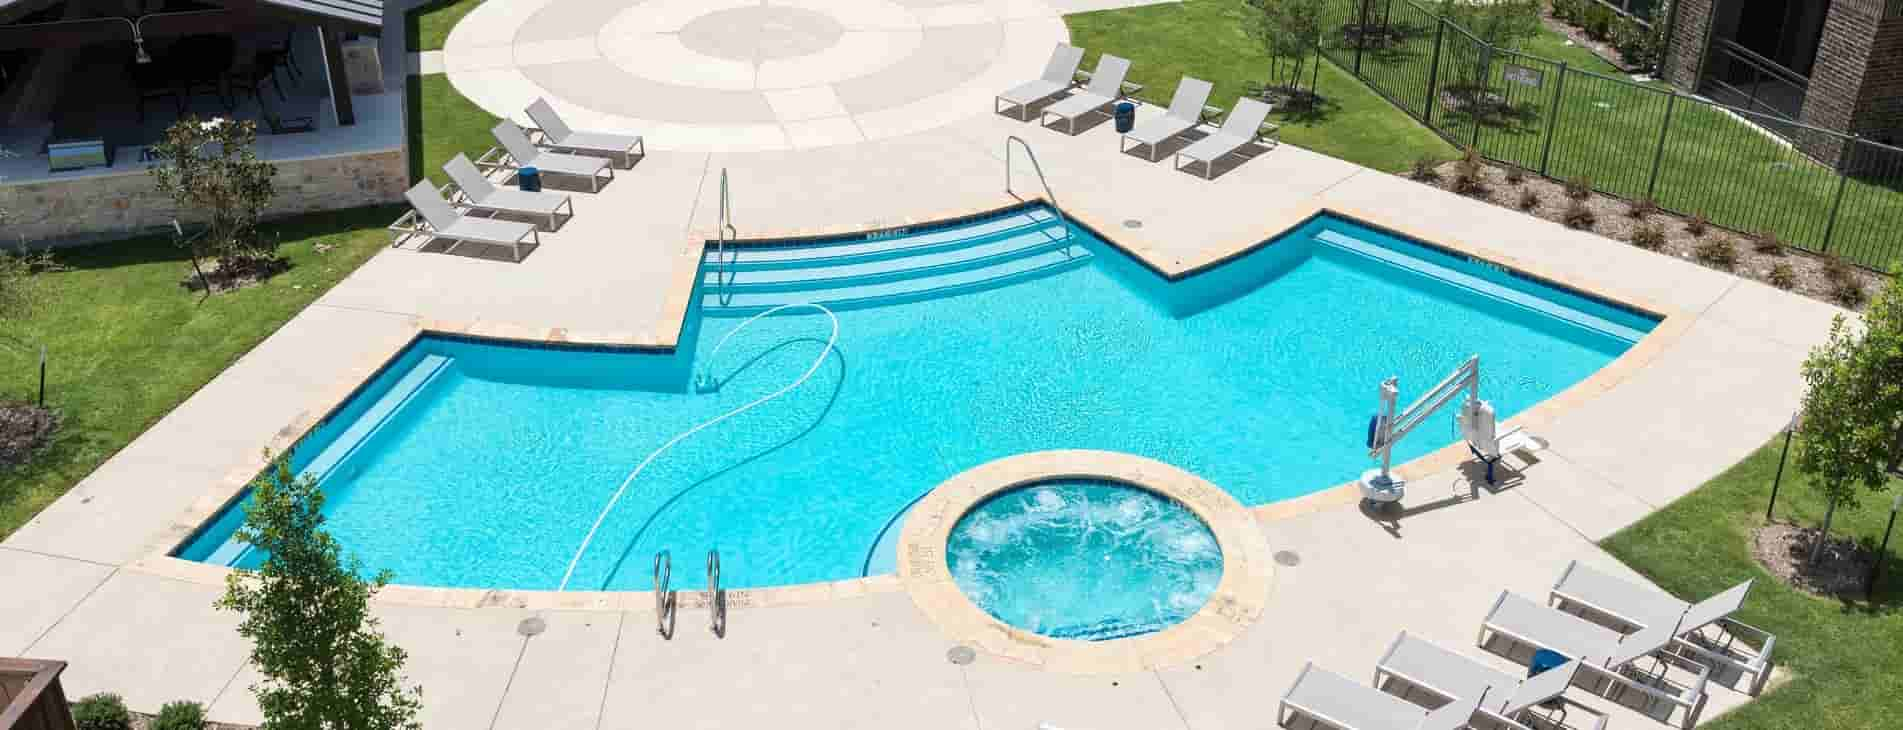 The poolside at Larkspur at Twin Creeks in Allen, TX